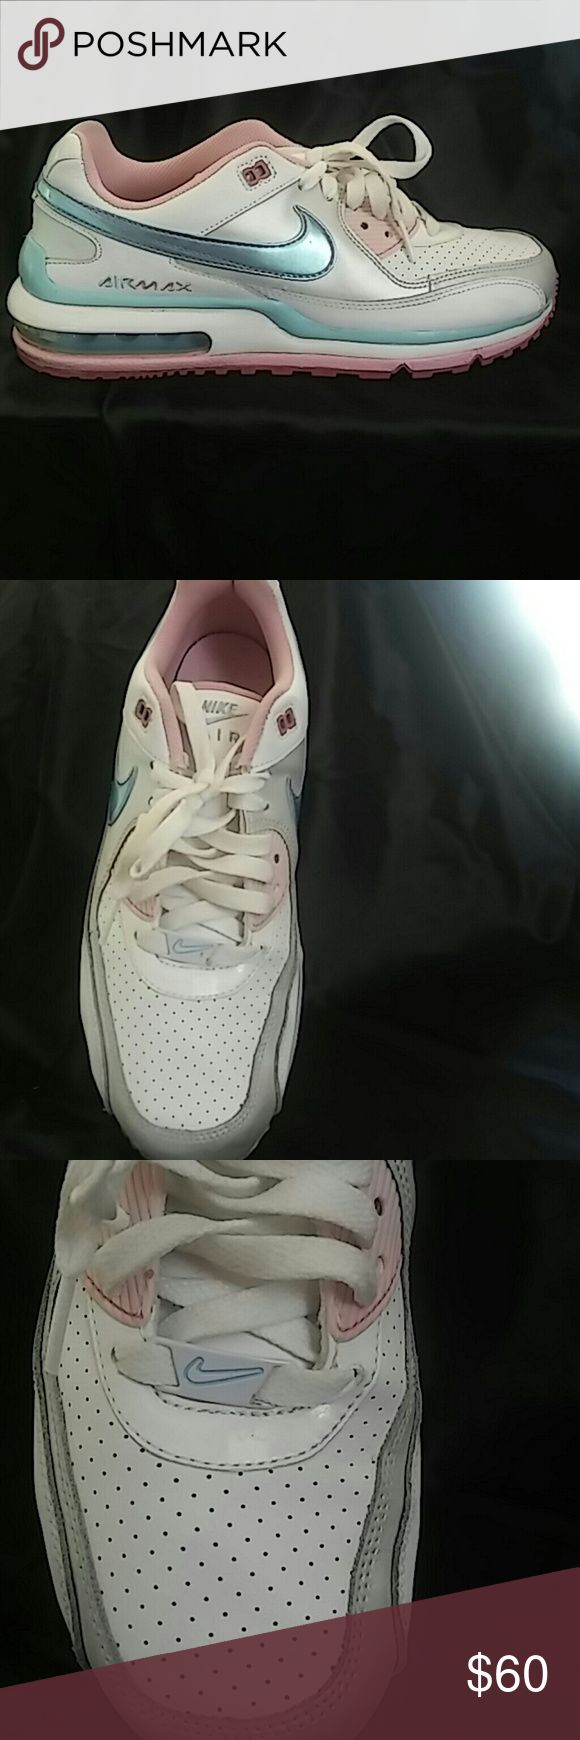 Nike Air Max in Womens Sz 8/Youth Sz 6.5 In this listing is a preowned pair of Air Max Sneakers that I've worn less than 5 times since I really don't get to wear sneakers often. These sneakers are a beautiful pink, light blue, white and silver. These shoe